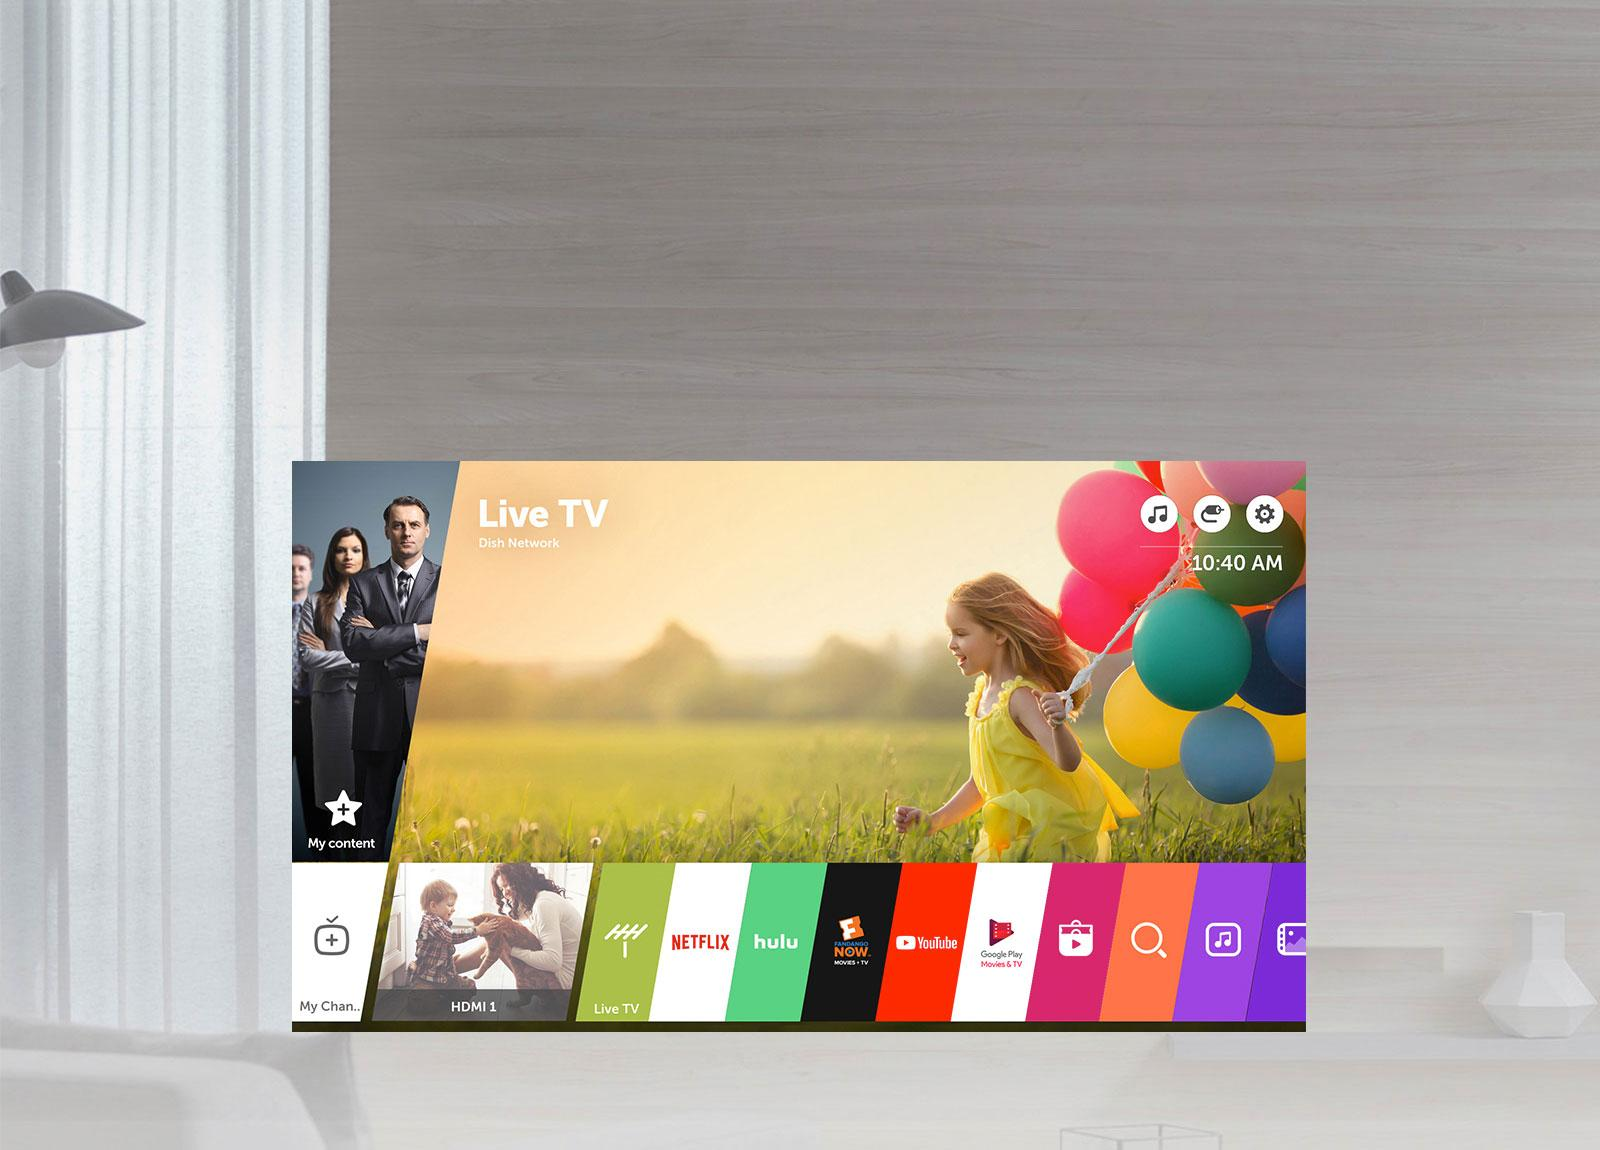 LG 32LJ550M: 32-inch HD 720p Smart LED TV | LG USA